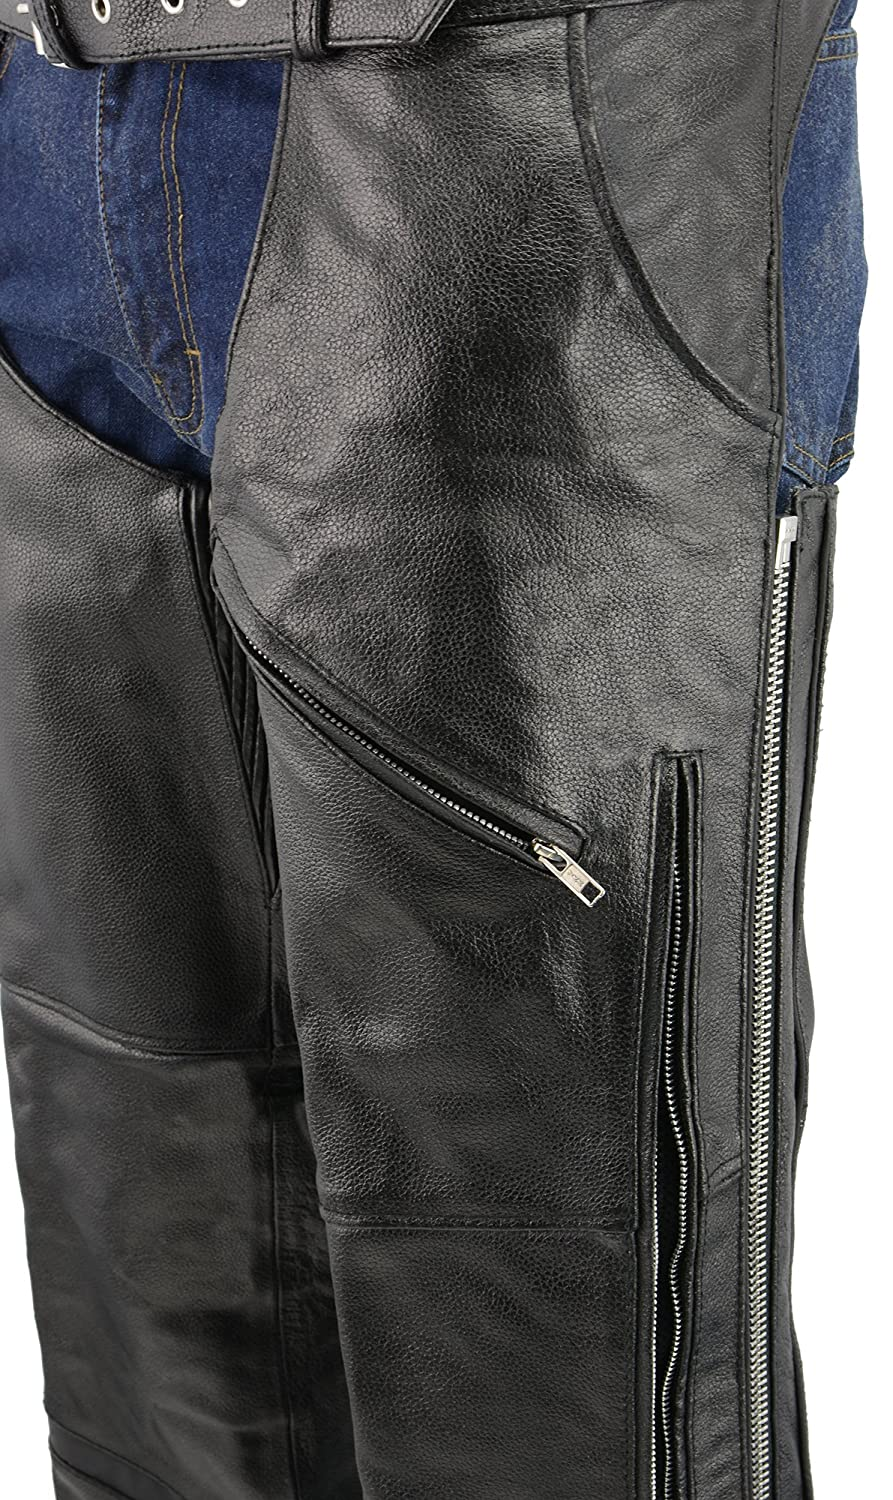 M-BOSS MOTORCYCLE APPAREL-BOS15502-BLACK-Men/'s jean style vented and reflective leather chaps.-BLACK-X-LARGE